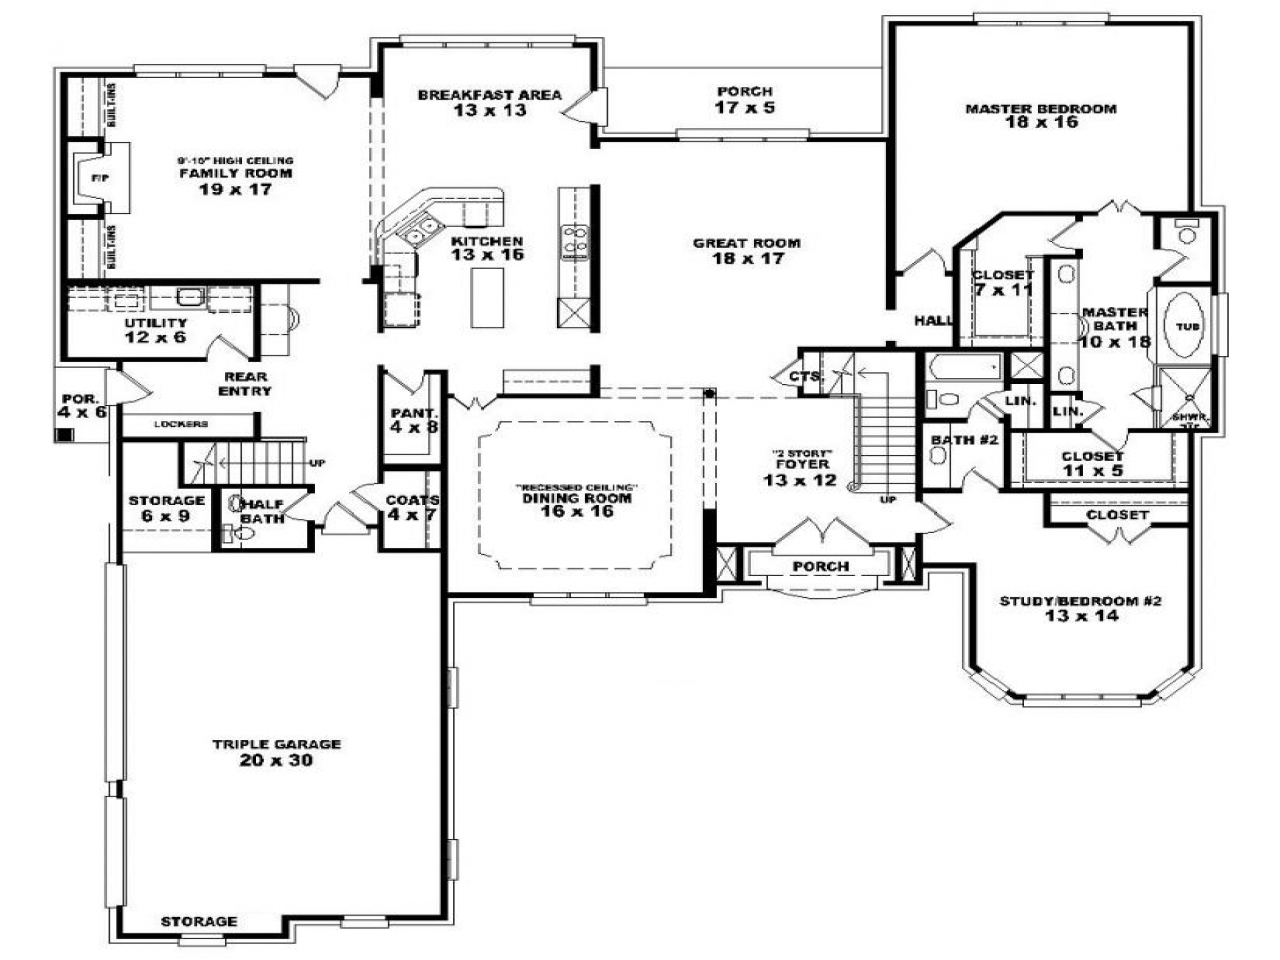 4 Bedroom One Story House Plans Our Two Bedroom Story